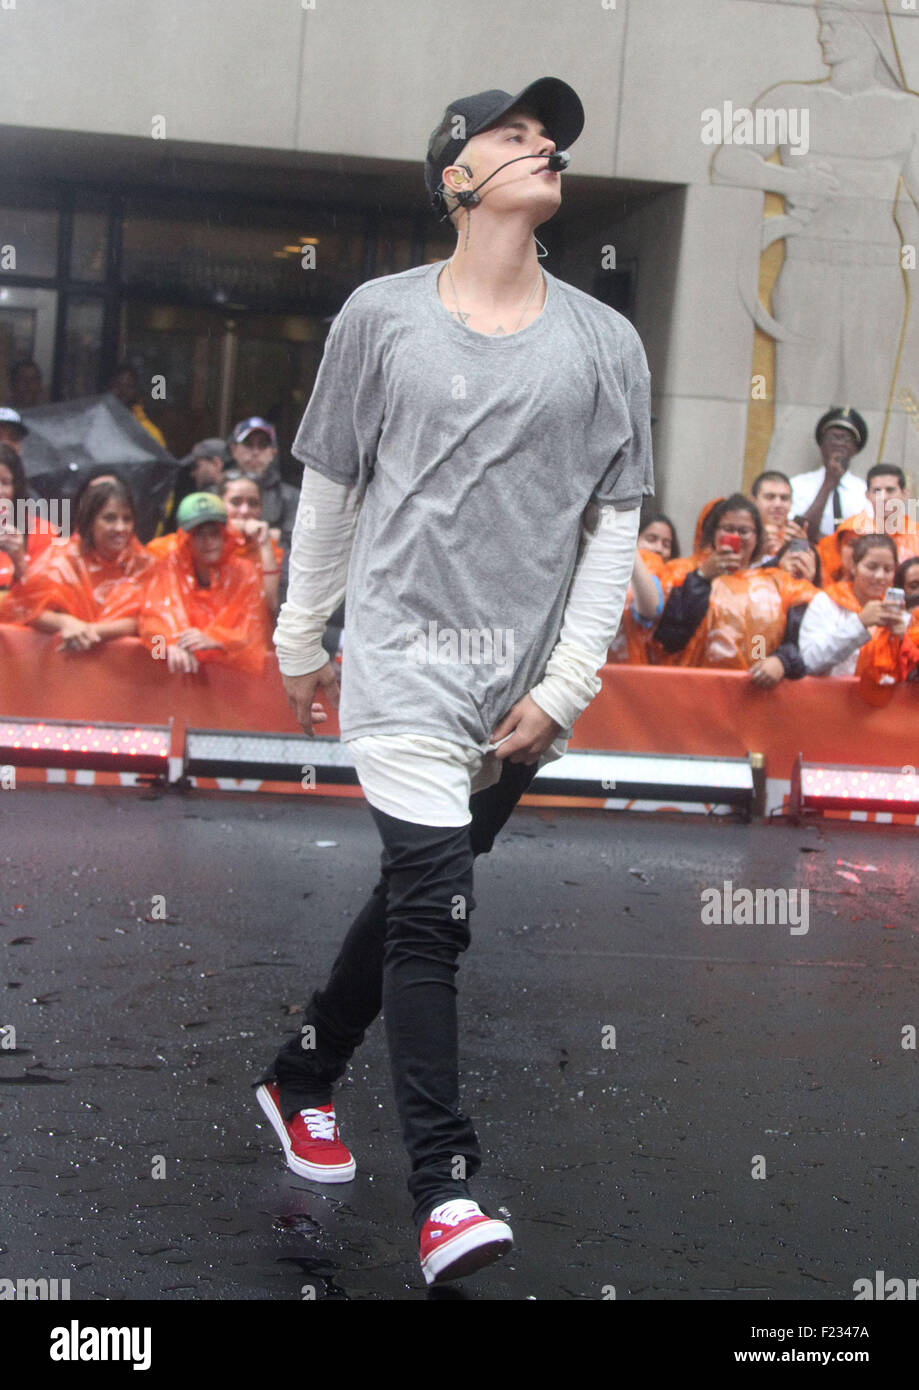 New York, New York, USA. 10th Sep, 2015. JUSTIN BIEBER performs on the 'Today' show where it mostly rained - Stock Image